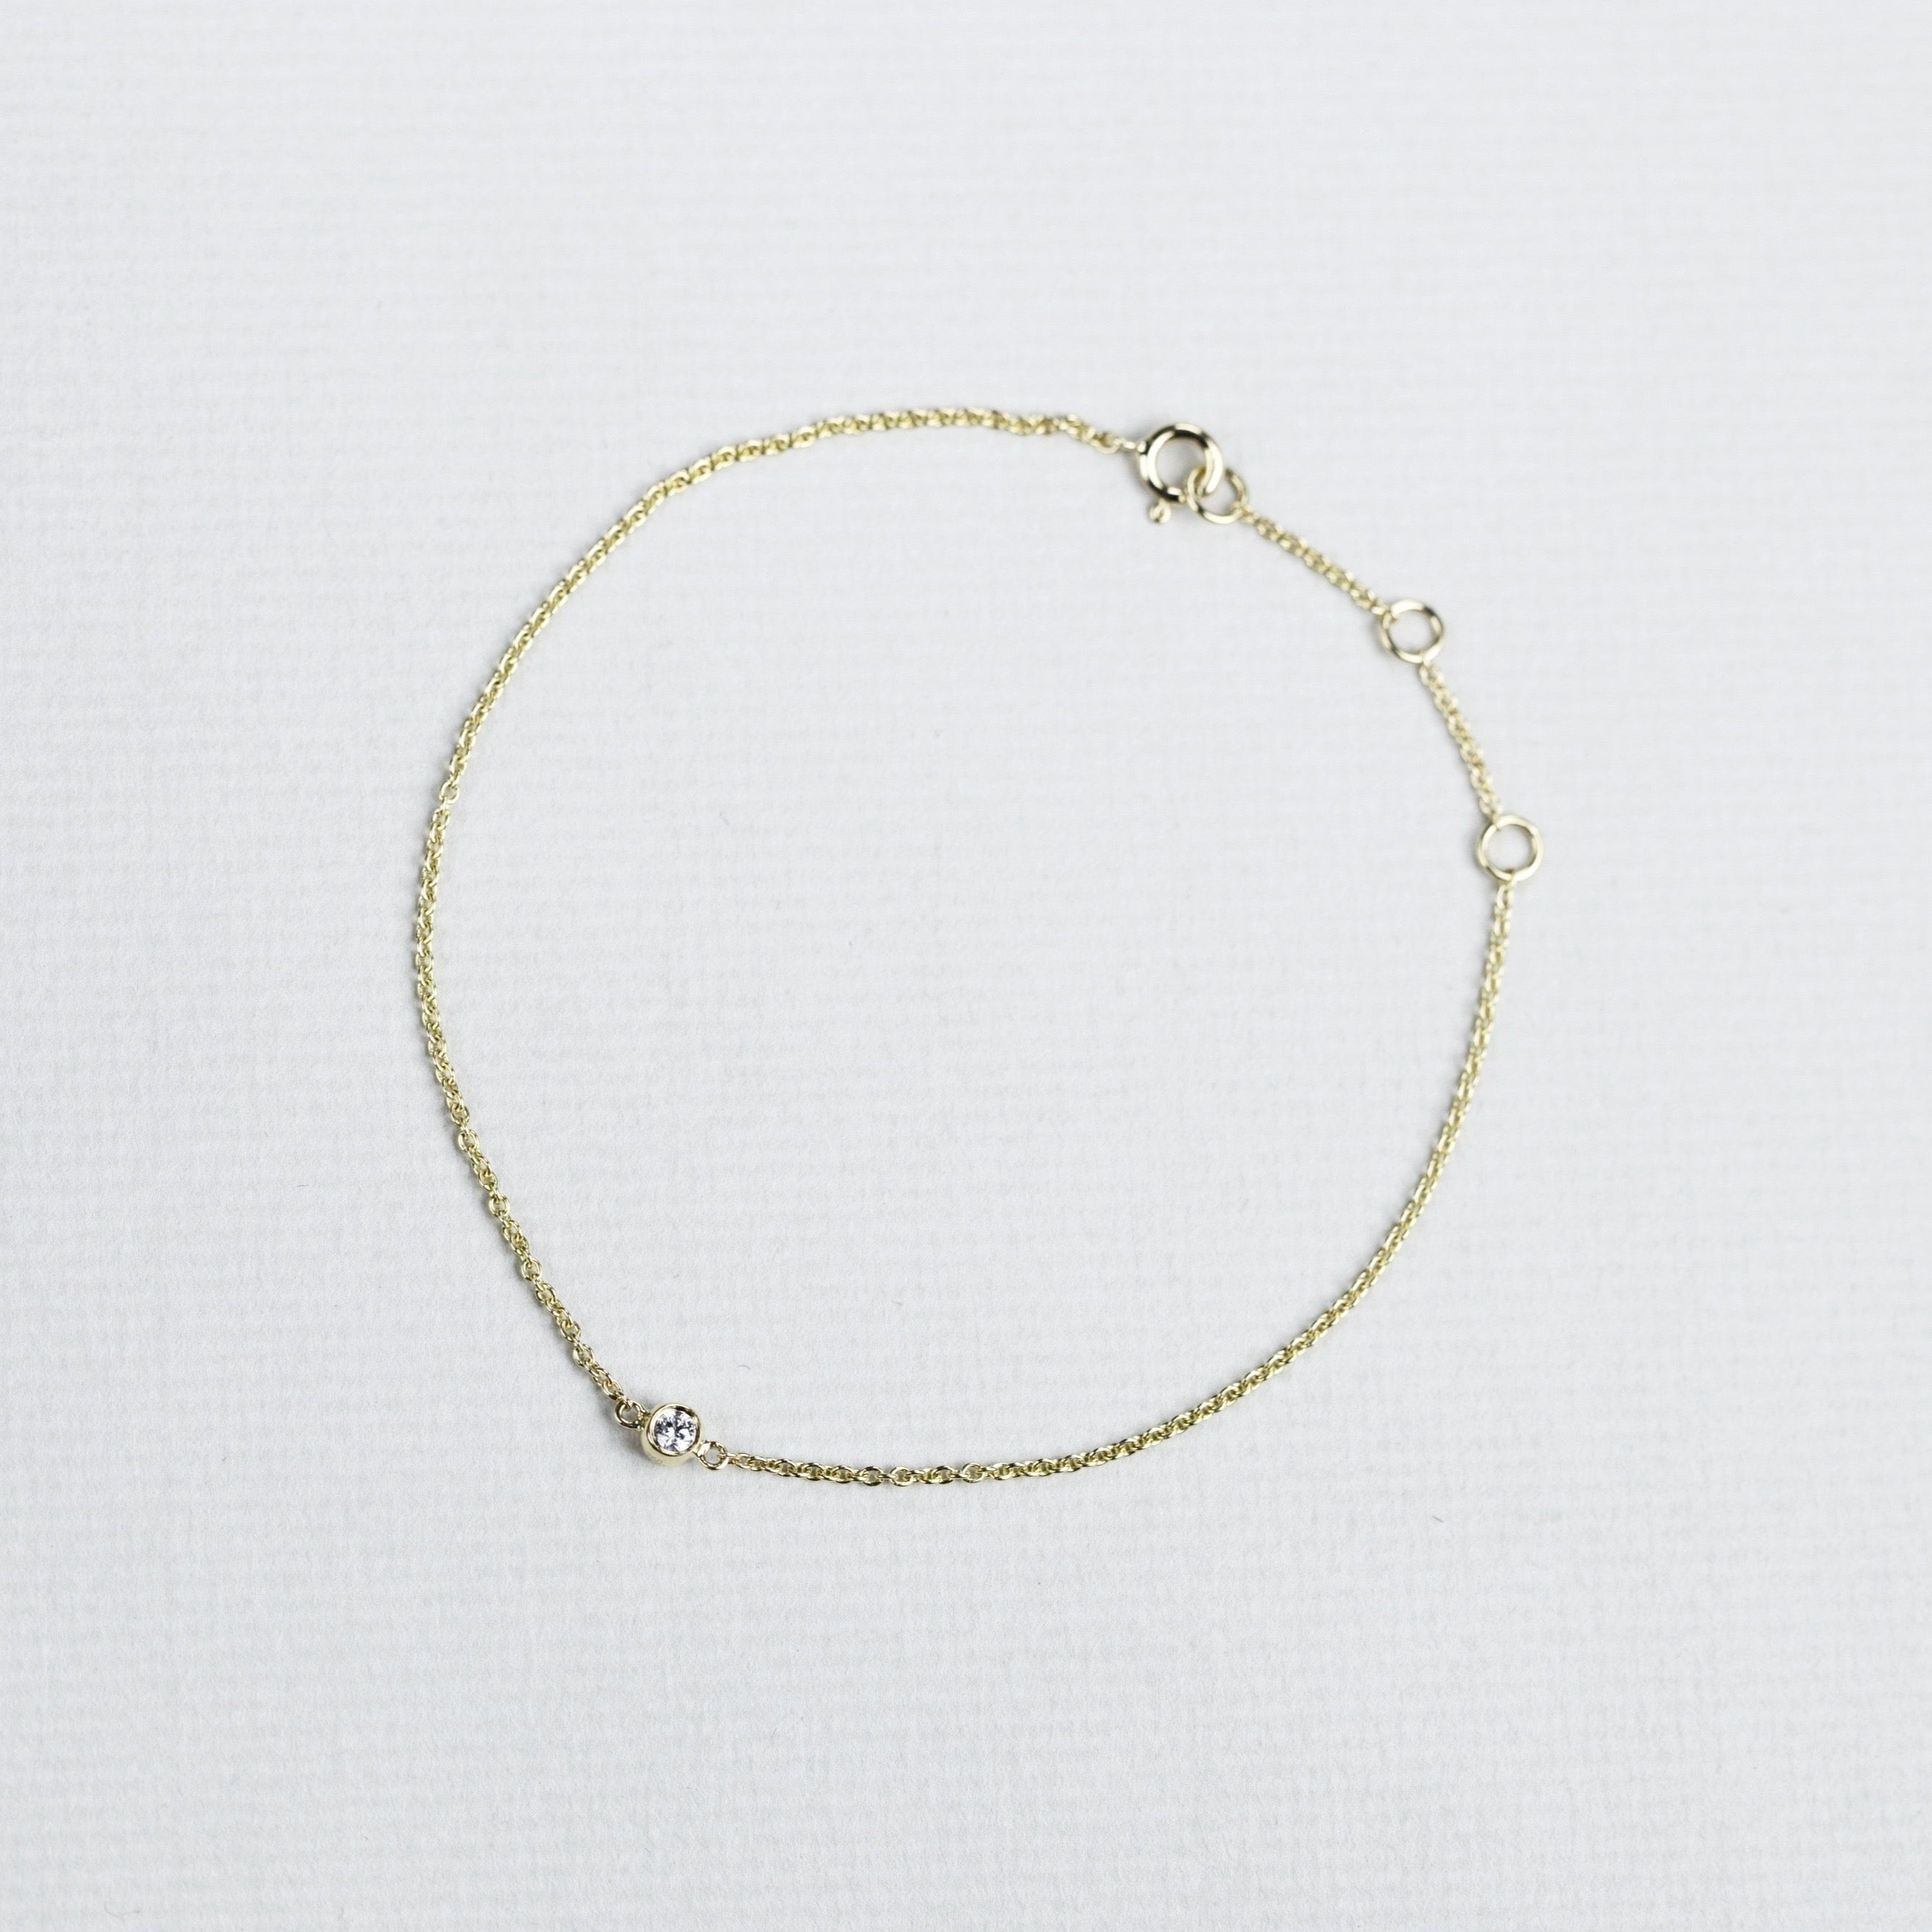 Gold and Diamond Bracelet (Small)